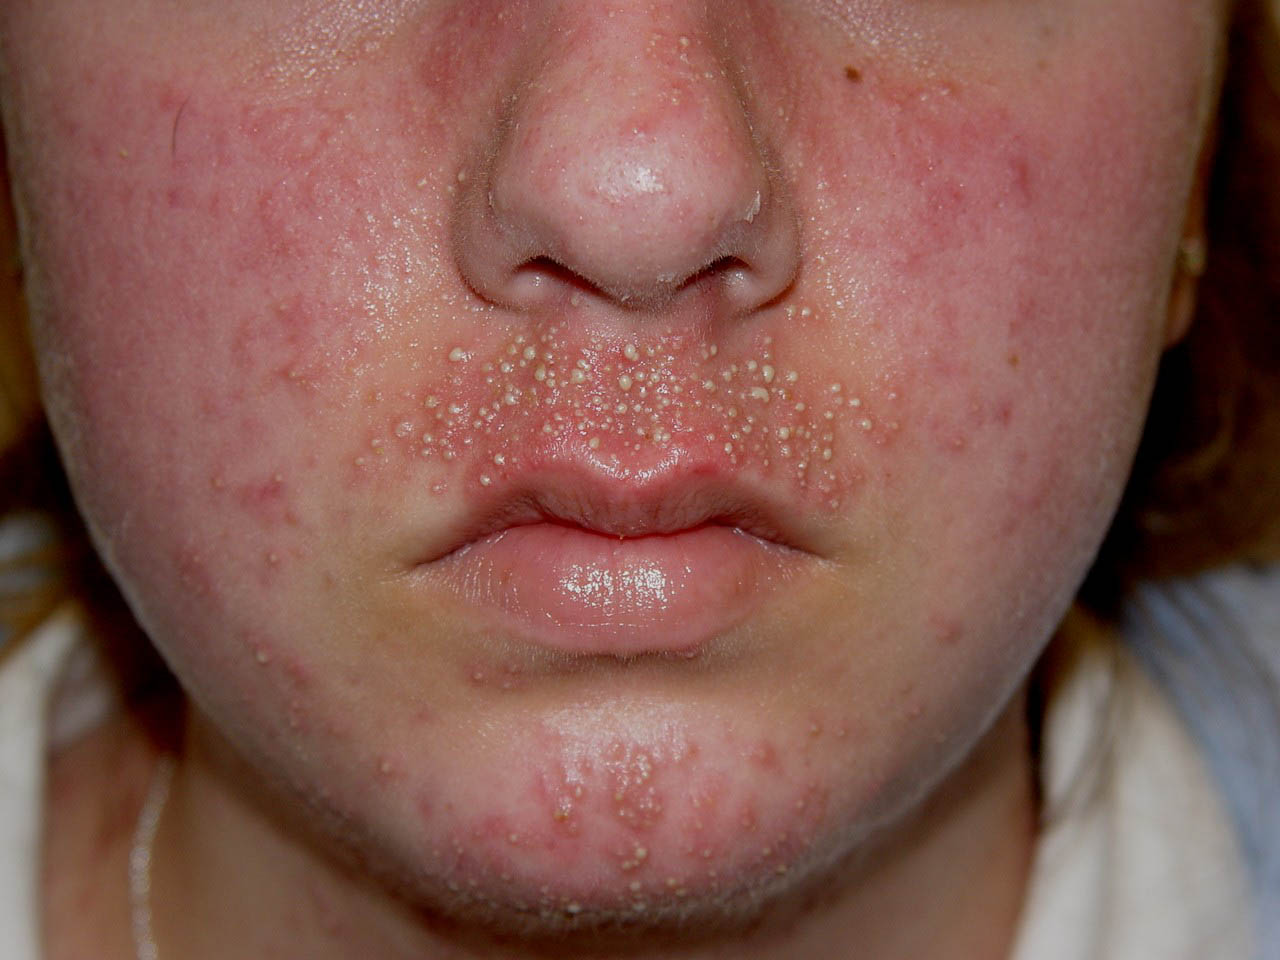 d1734bc23a4d Many people think that there is no possible treatment for acne conglobata.  But, this is not true. Though acne conglobata is quite rare and a severe  form of ...